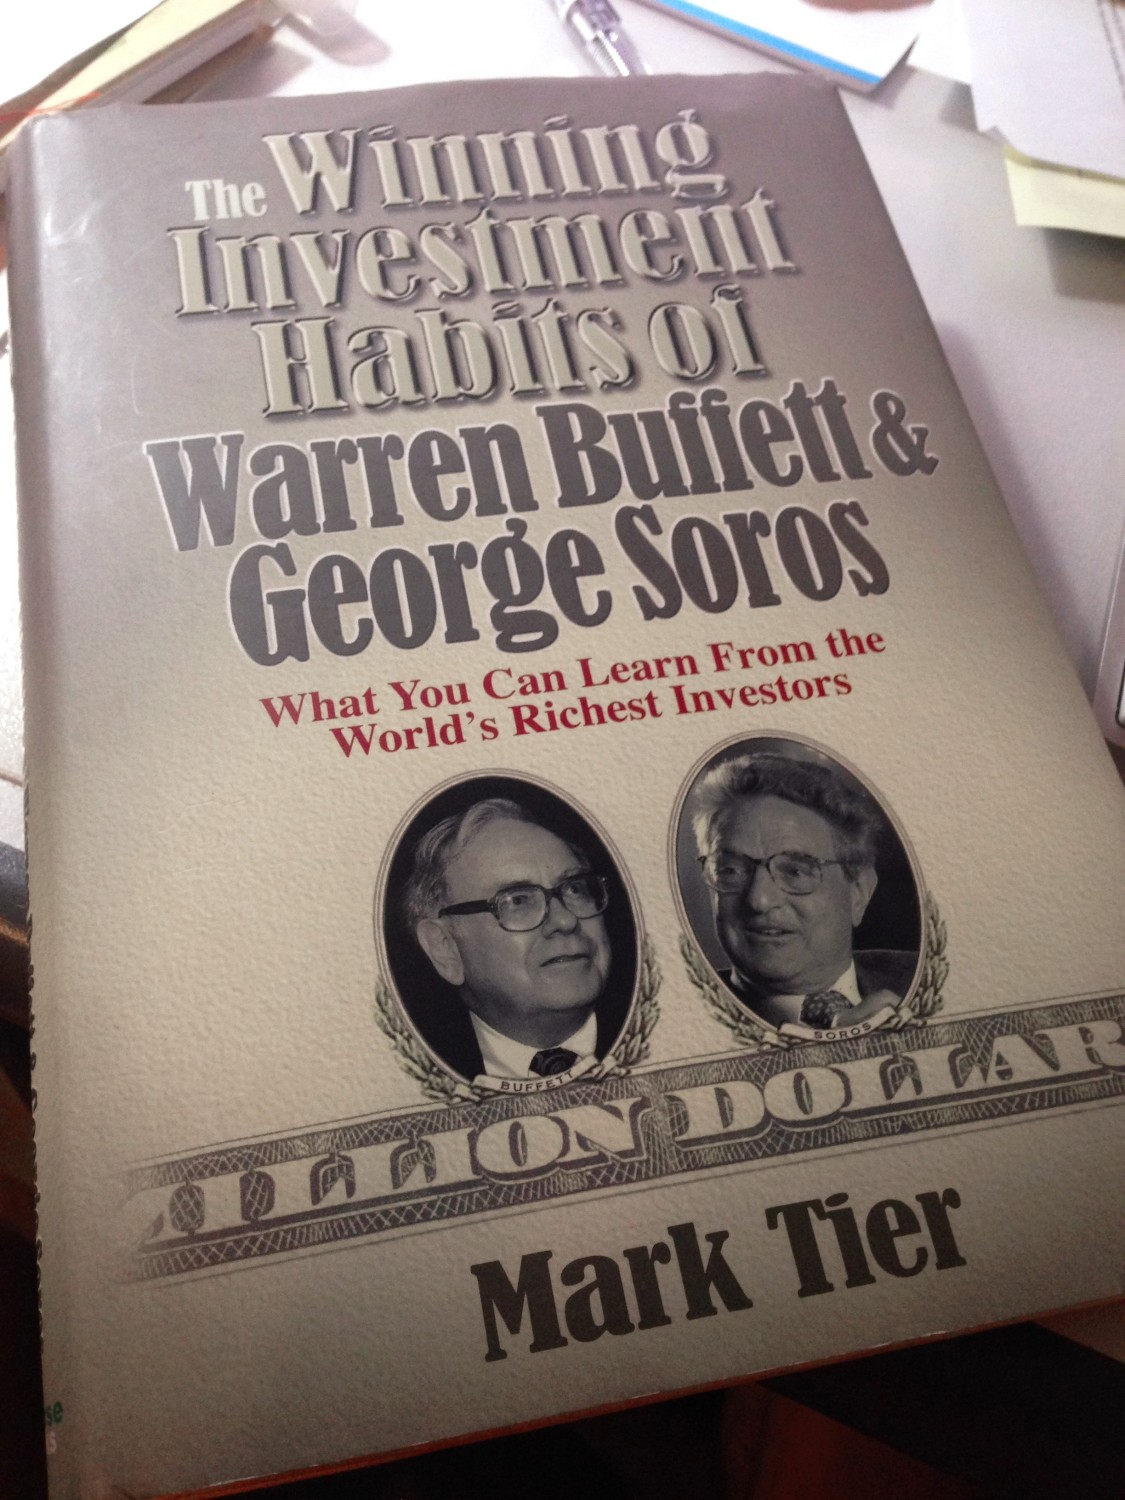 Winning investment habits of Warren Buffett & George Soros